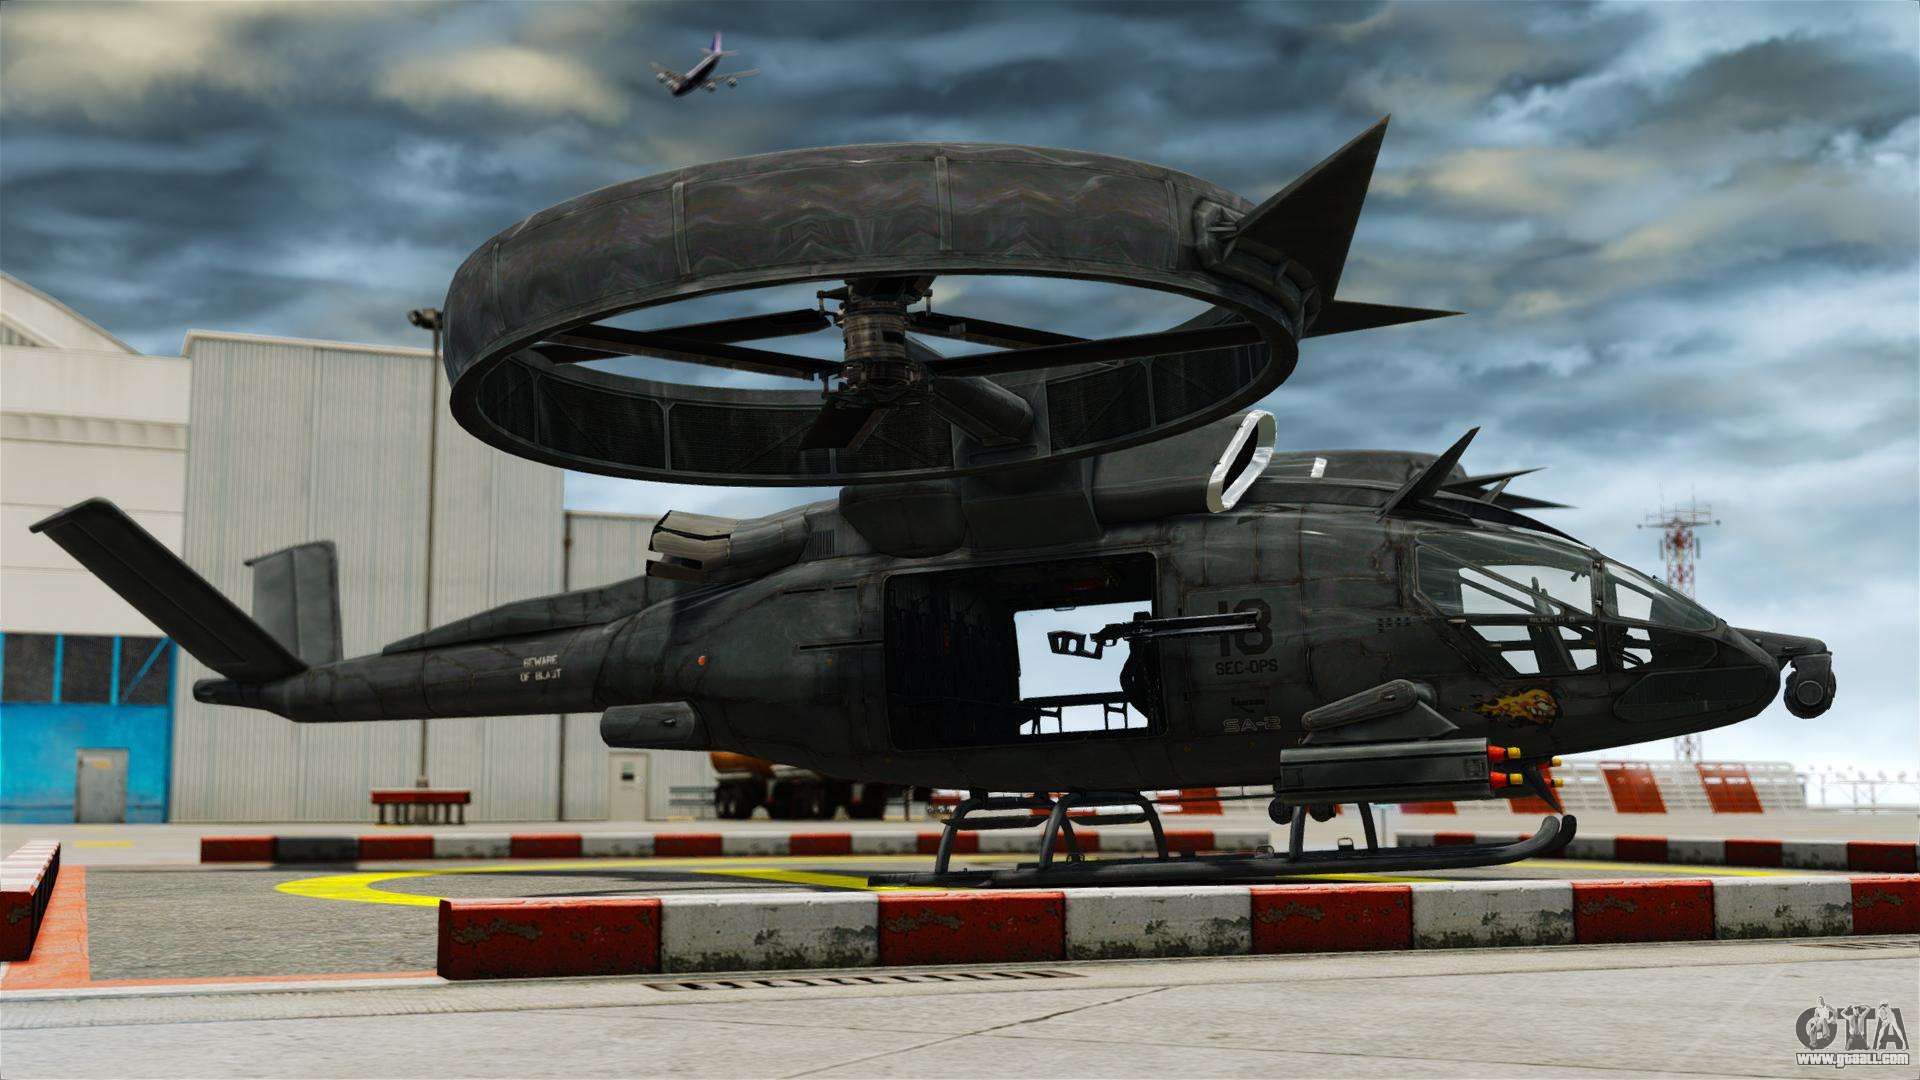 heli game with 27061 Transportnyy Vertolet Sa 2 Samson on Royalty Free Stock Image Heliport Image6760576 besides Activities 95 furthermore Heliborne Is Out Tommorow further 08 further Details.